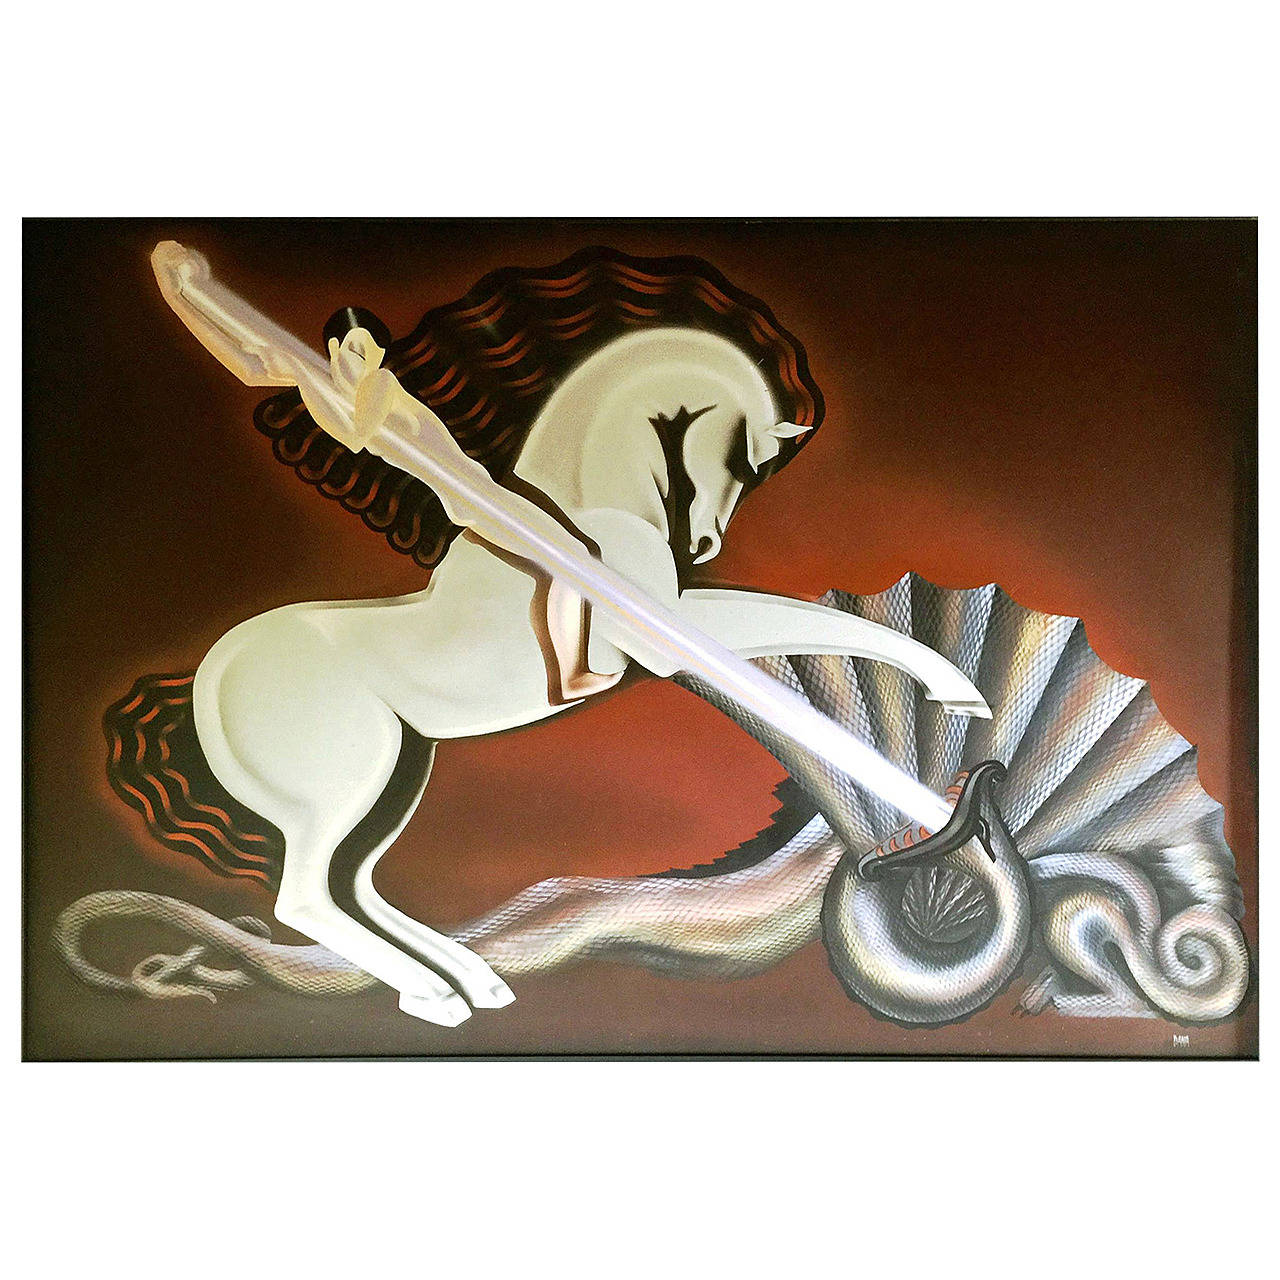 Modernist Art Deco Style Painting of St. George & the Dragon, Signed Dana